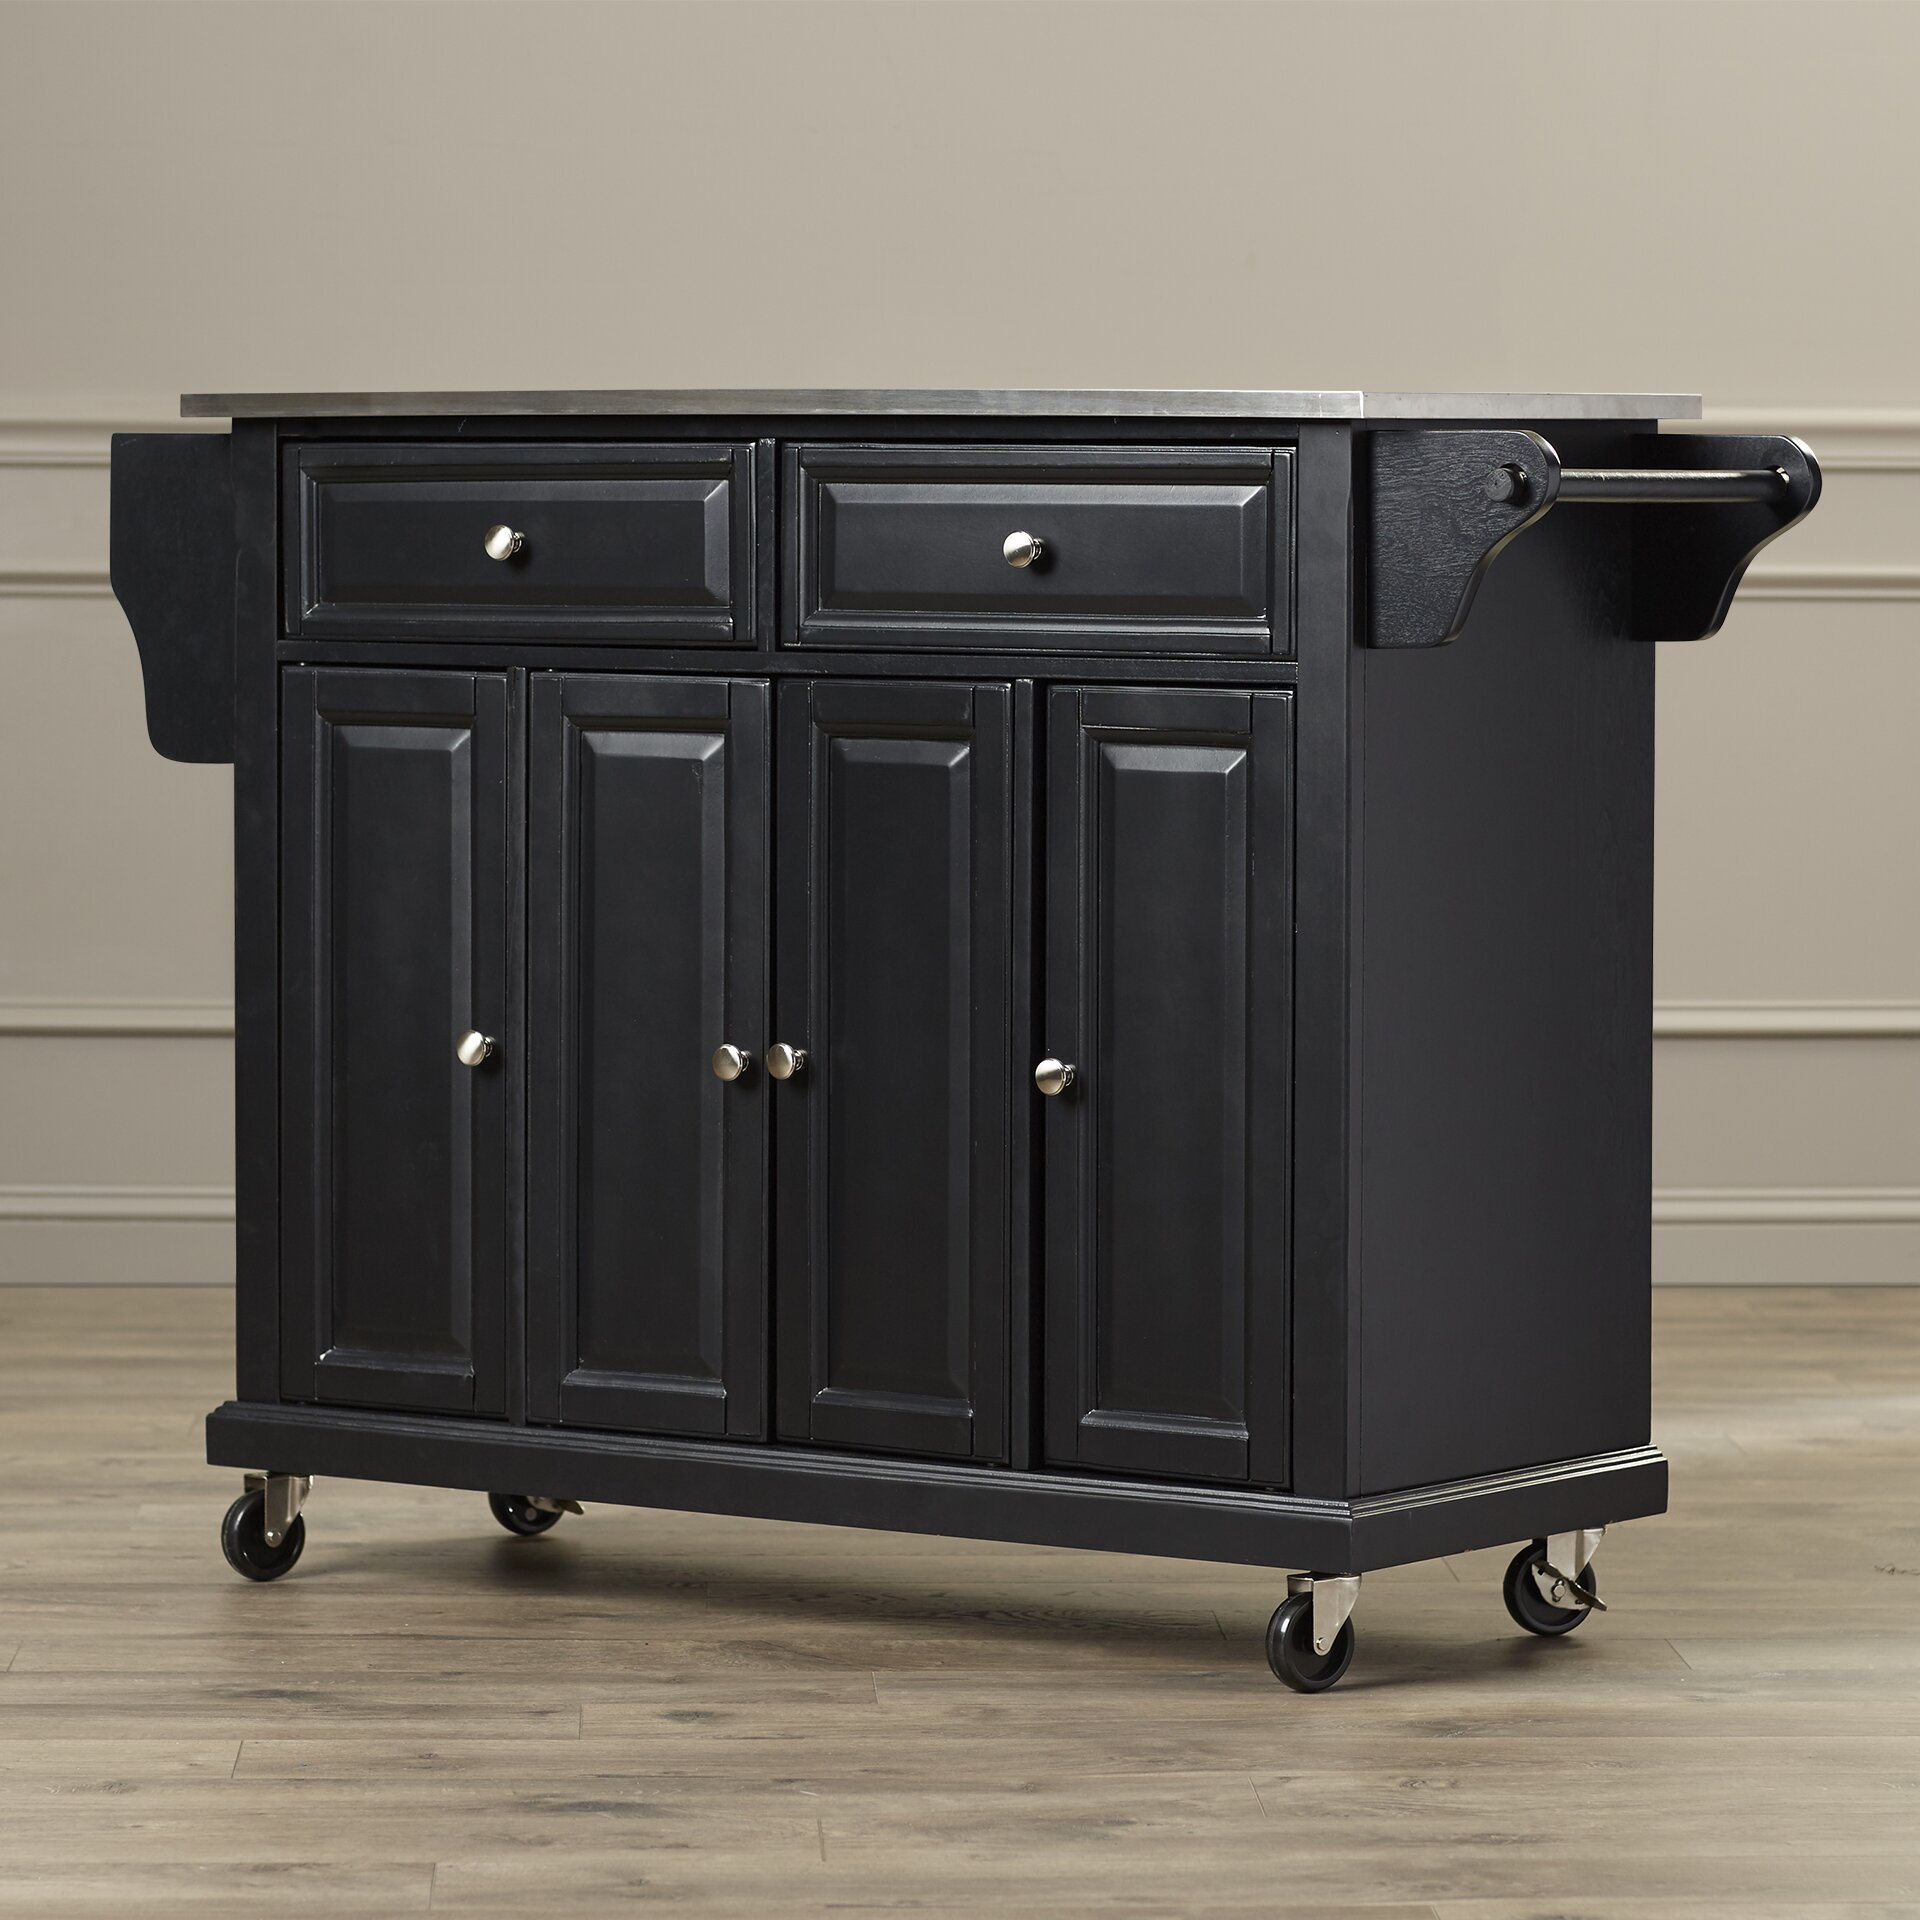 Darby Home Co Pottstown Kitchen Island With Stainless Steel Top Reviews